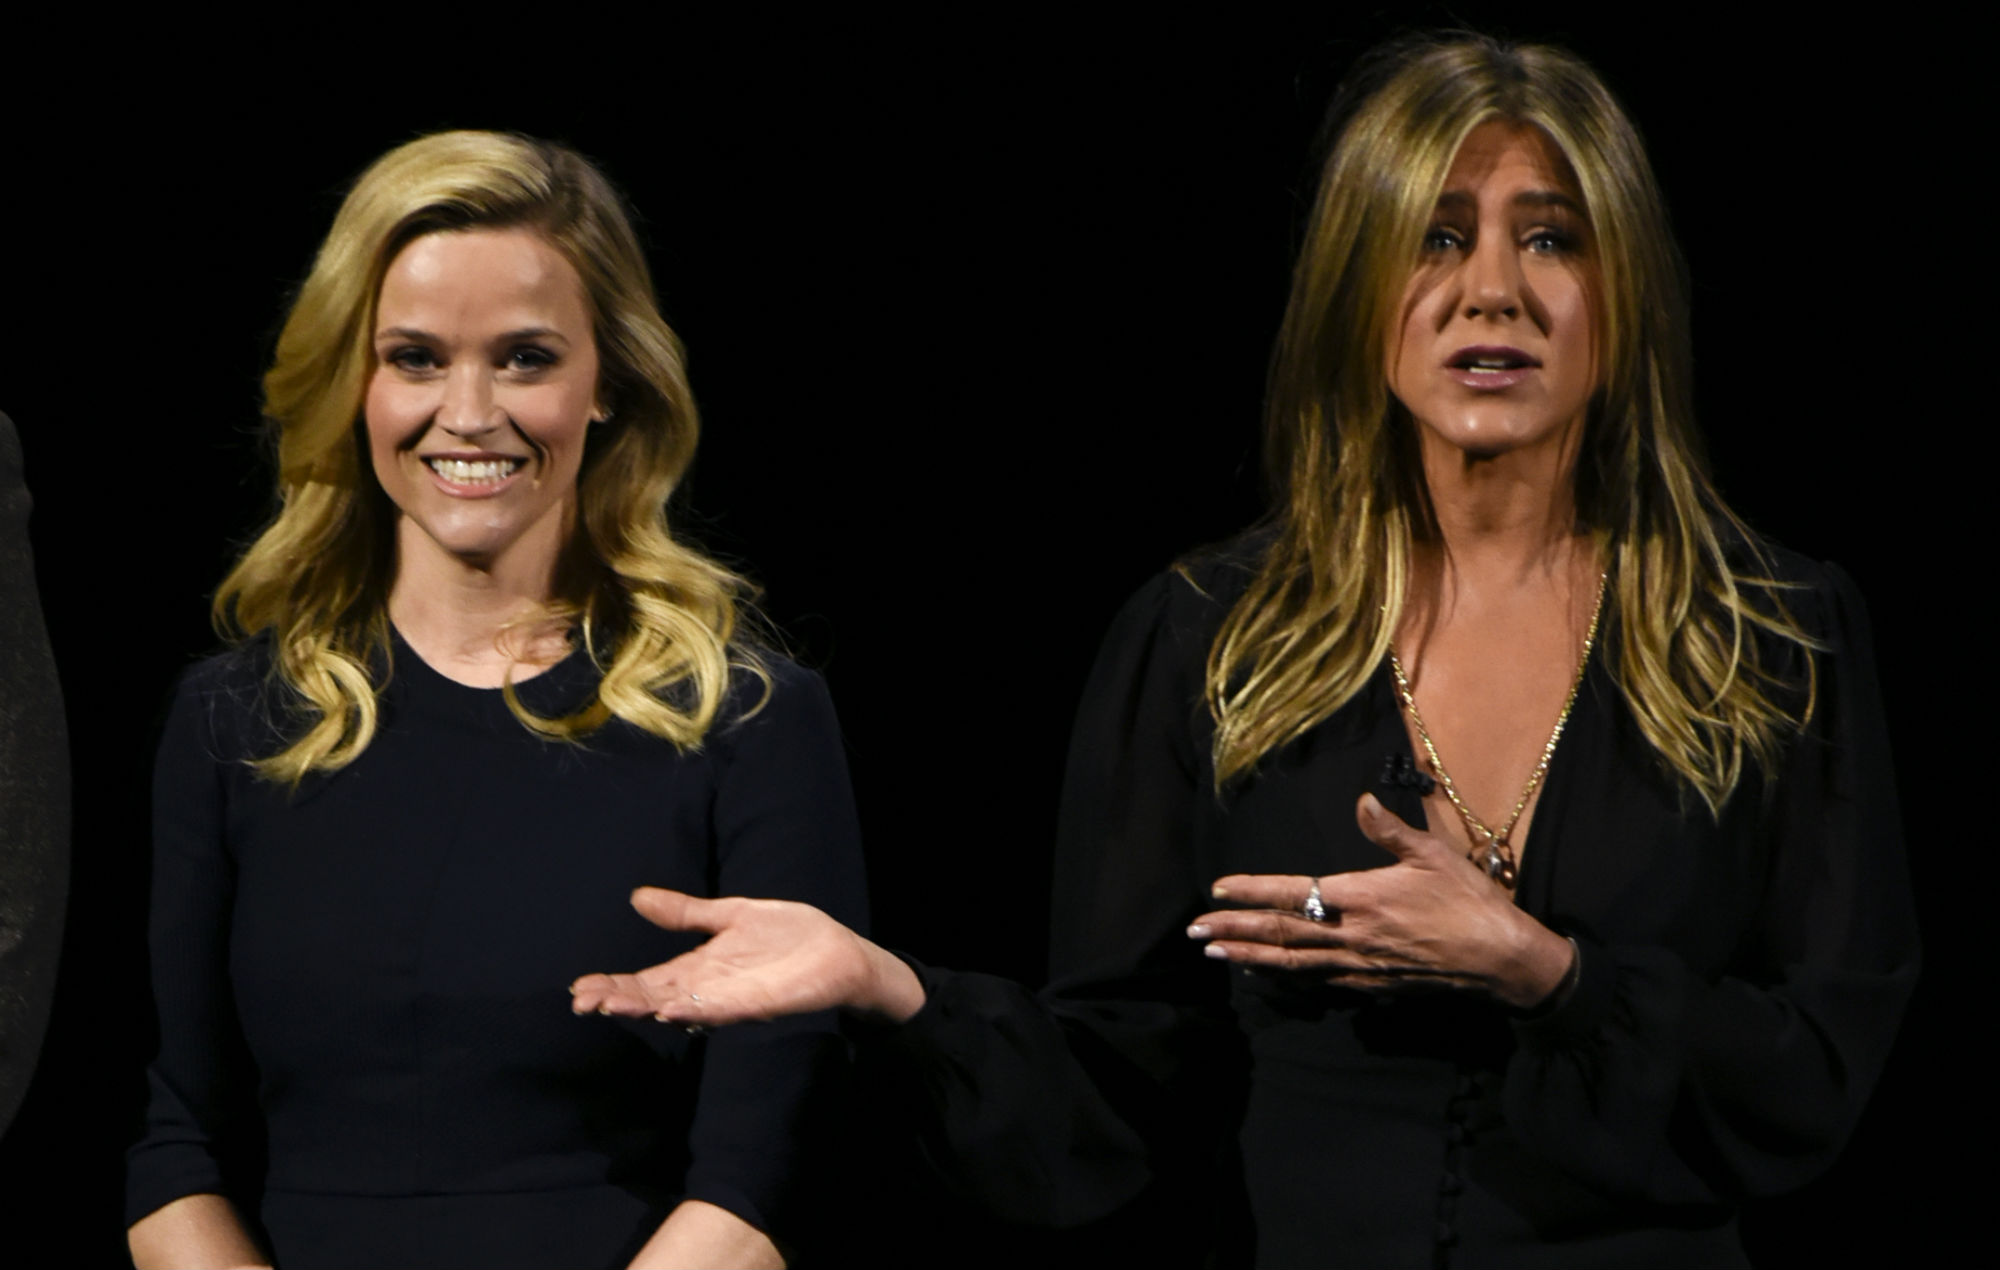 Jennifer Aniston and Reese Witherspoon stage 'Friends' reunion